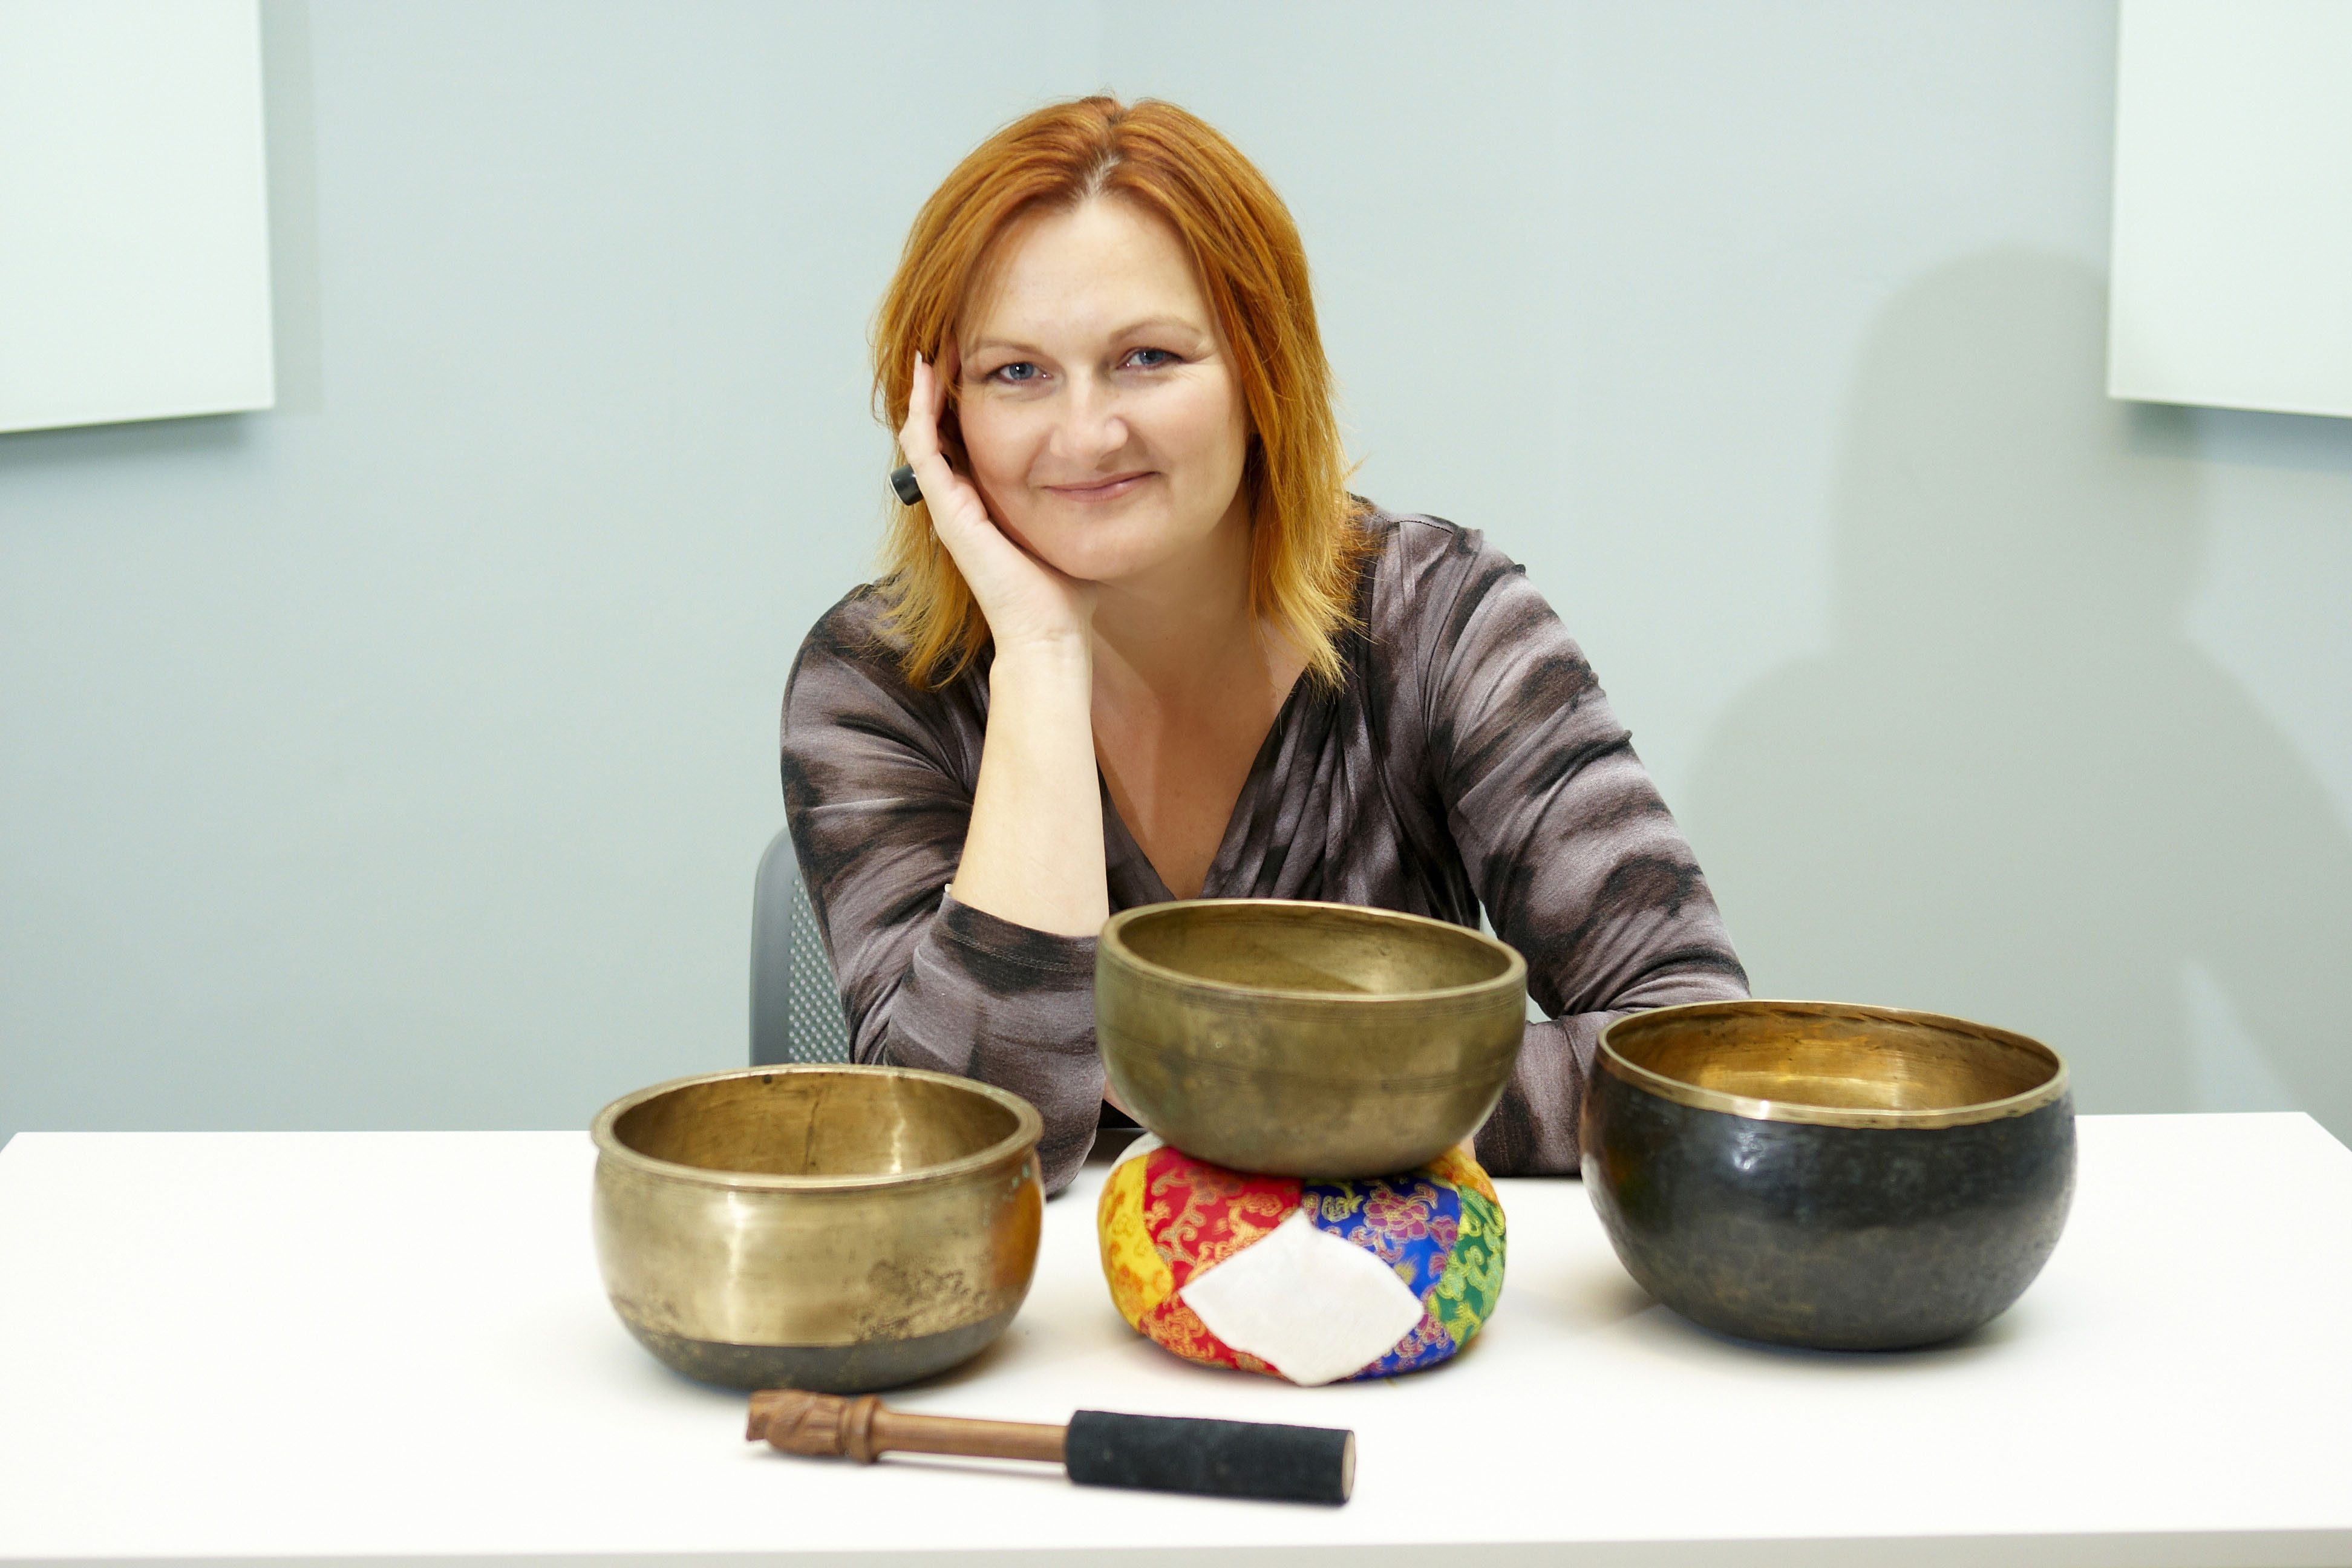 Lyz Cooper with Himalayan Bowls